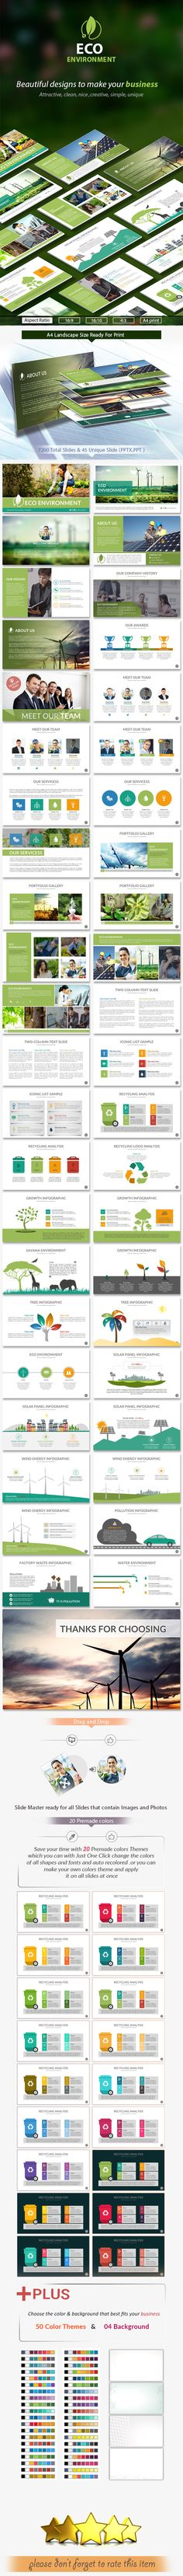 Eco Environment Powerpoint Presentation Template. Download here: http://graphicriver.net/item/eco-environment-powerpoint-presentation-template/15708481?ref=ksioks